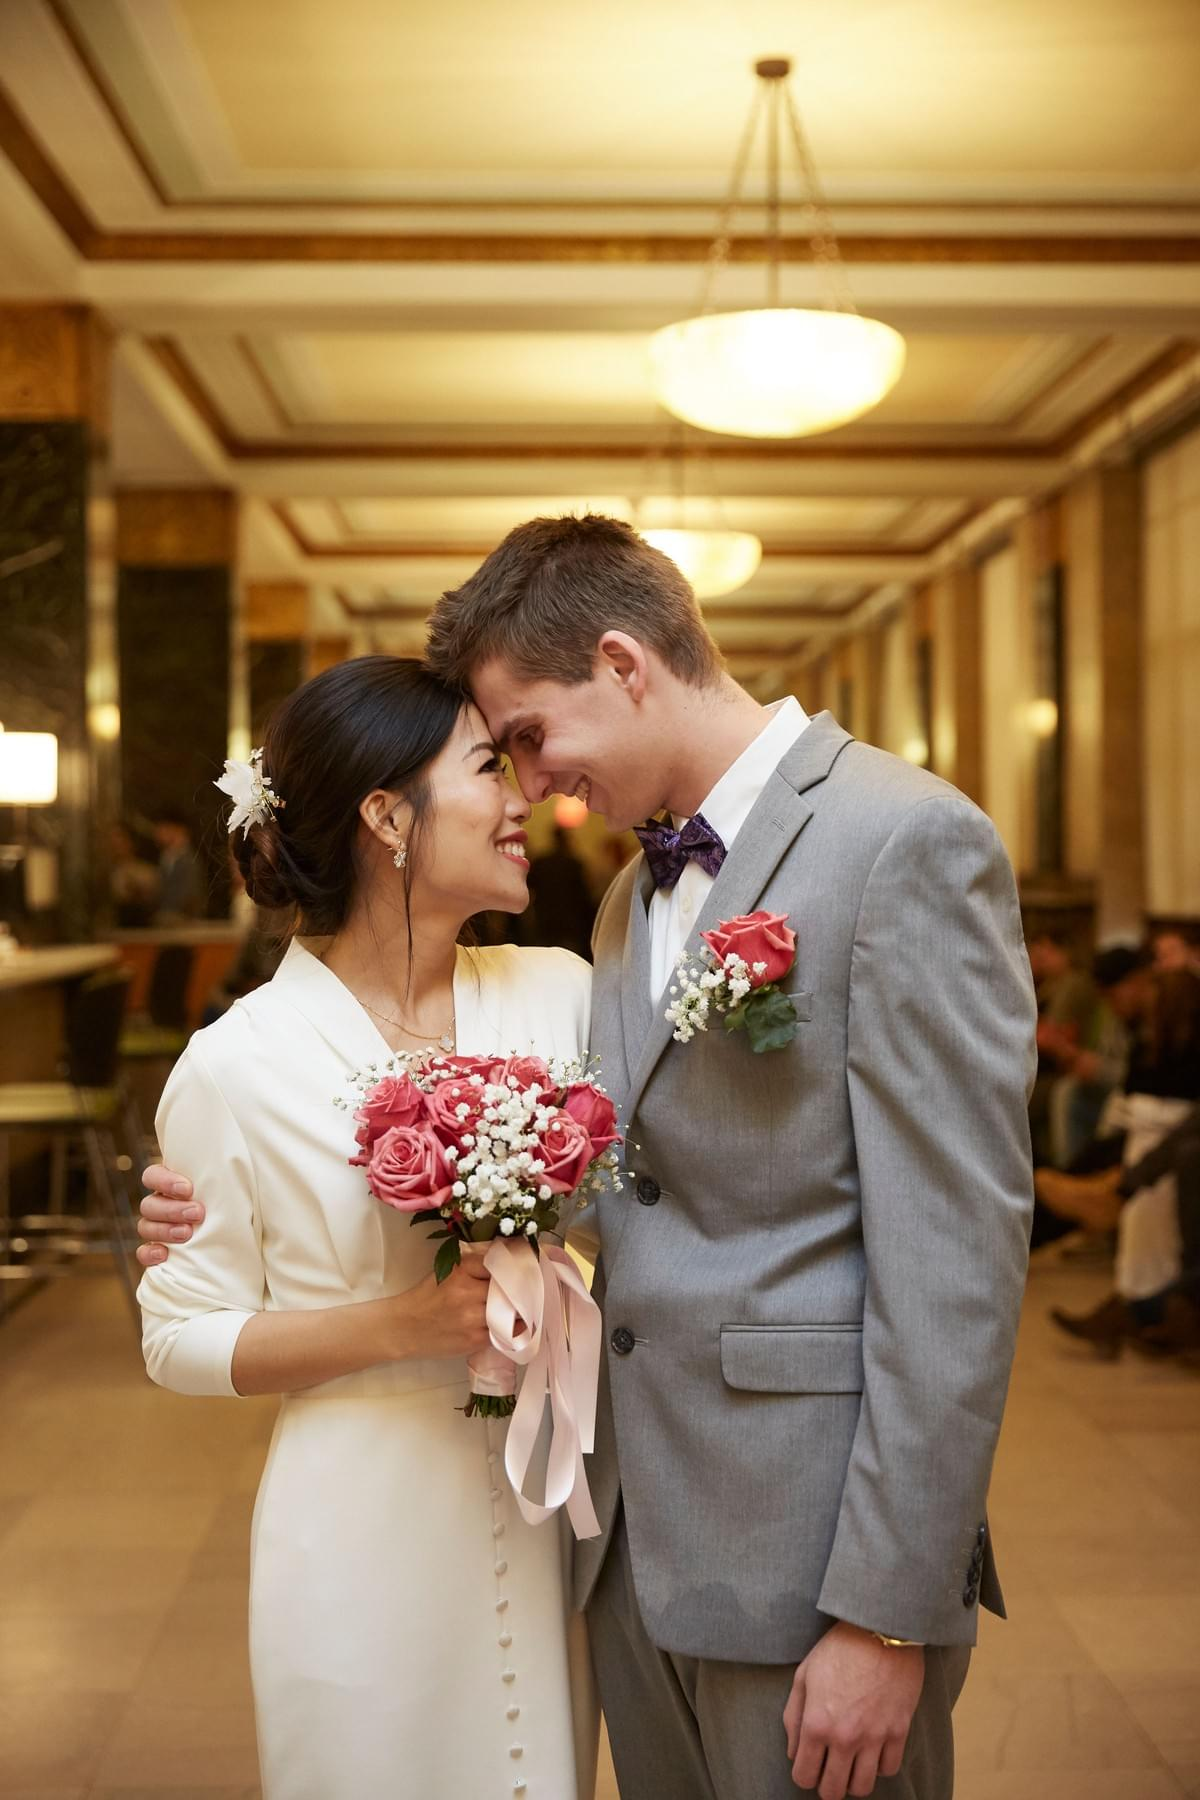 New York City Hall / New York Wedding / City Clerk wedding / City Marriage Bureau / 纽约公证结婚 / 纽约结婚公正摄影师/  纽约摄影师